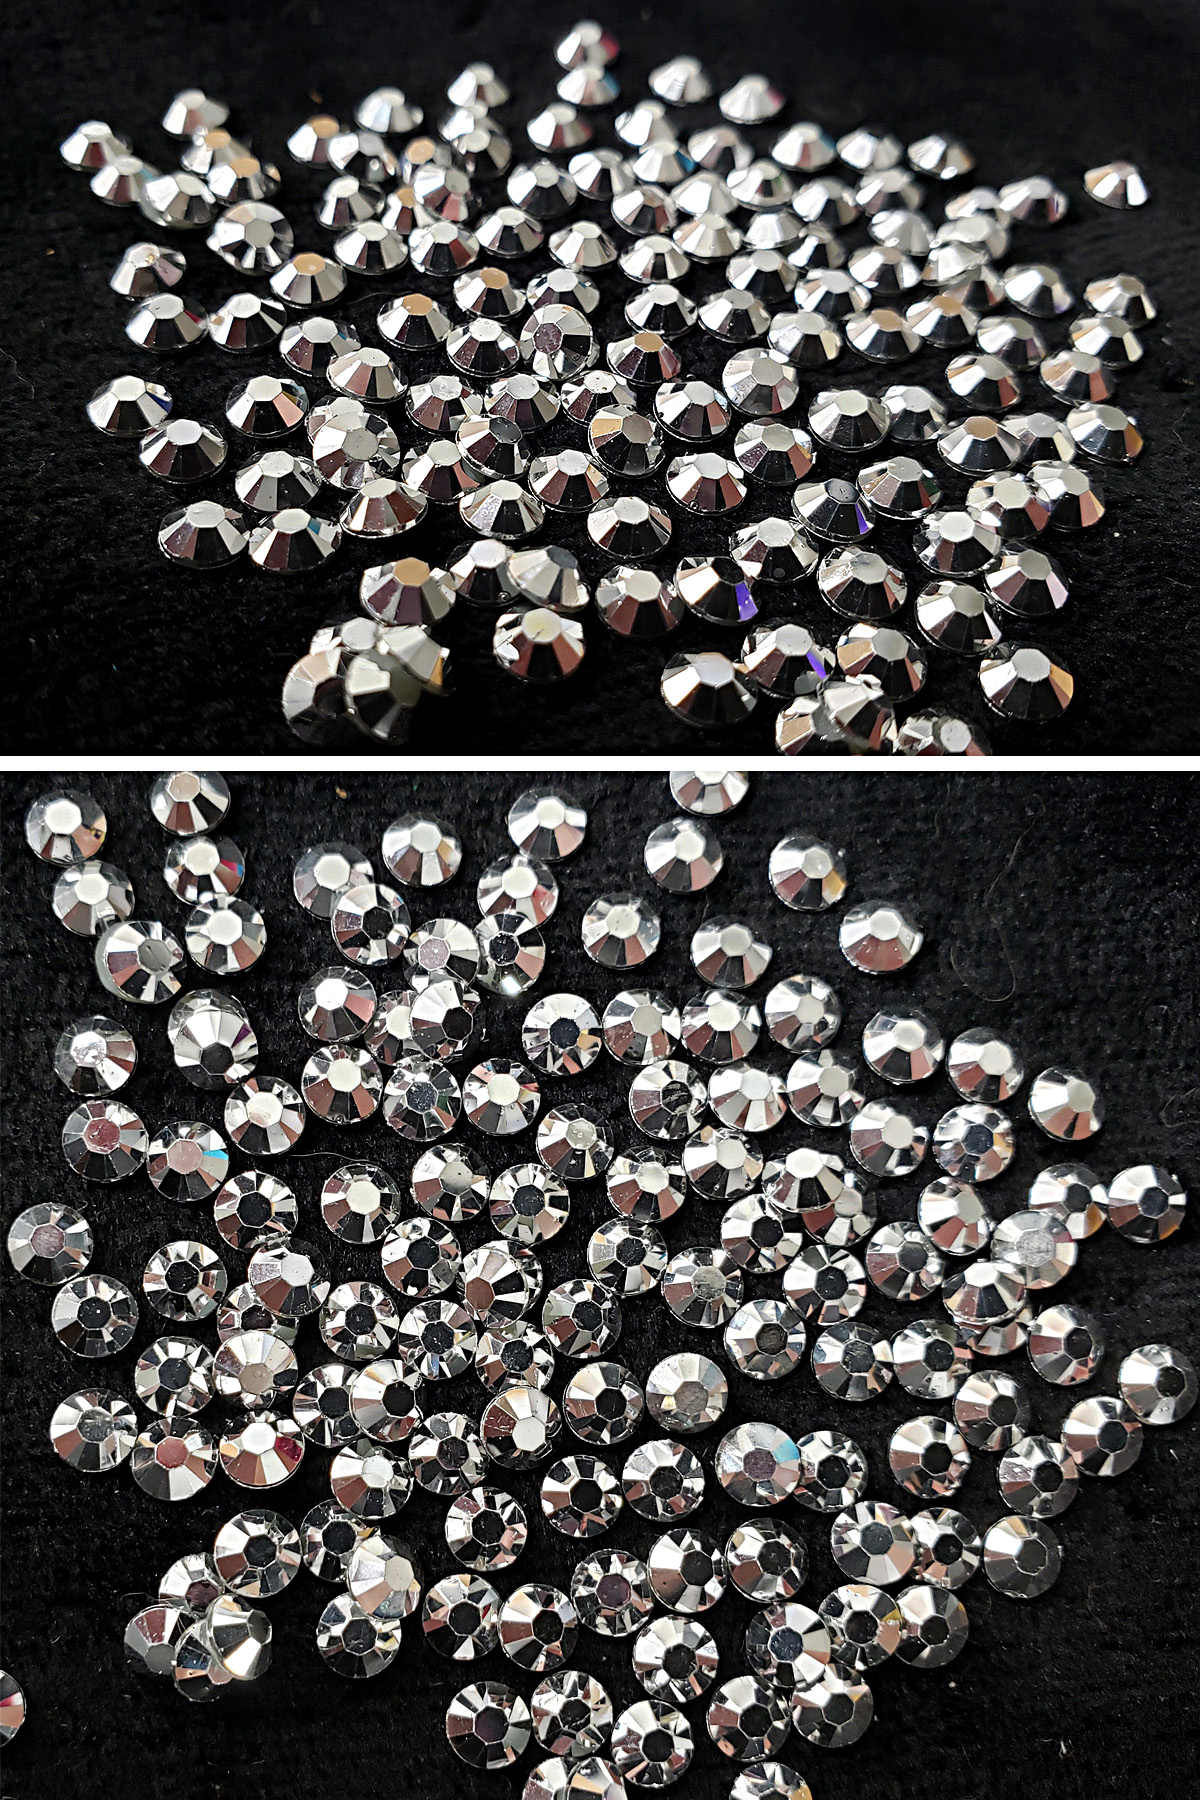 A two part image showing different views of a large pile of silver metallic crystals.